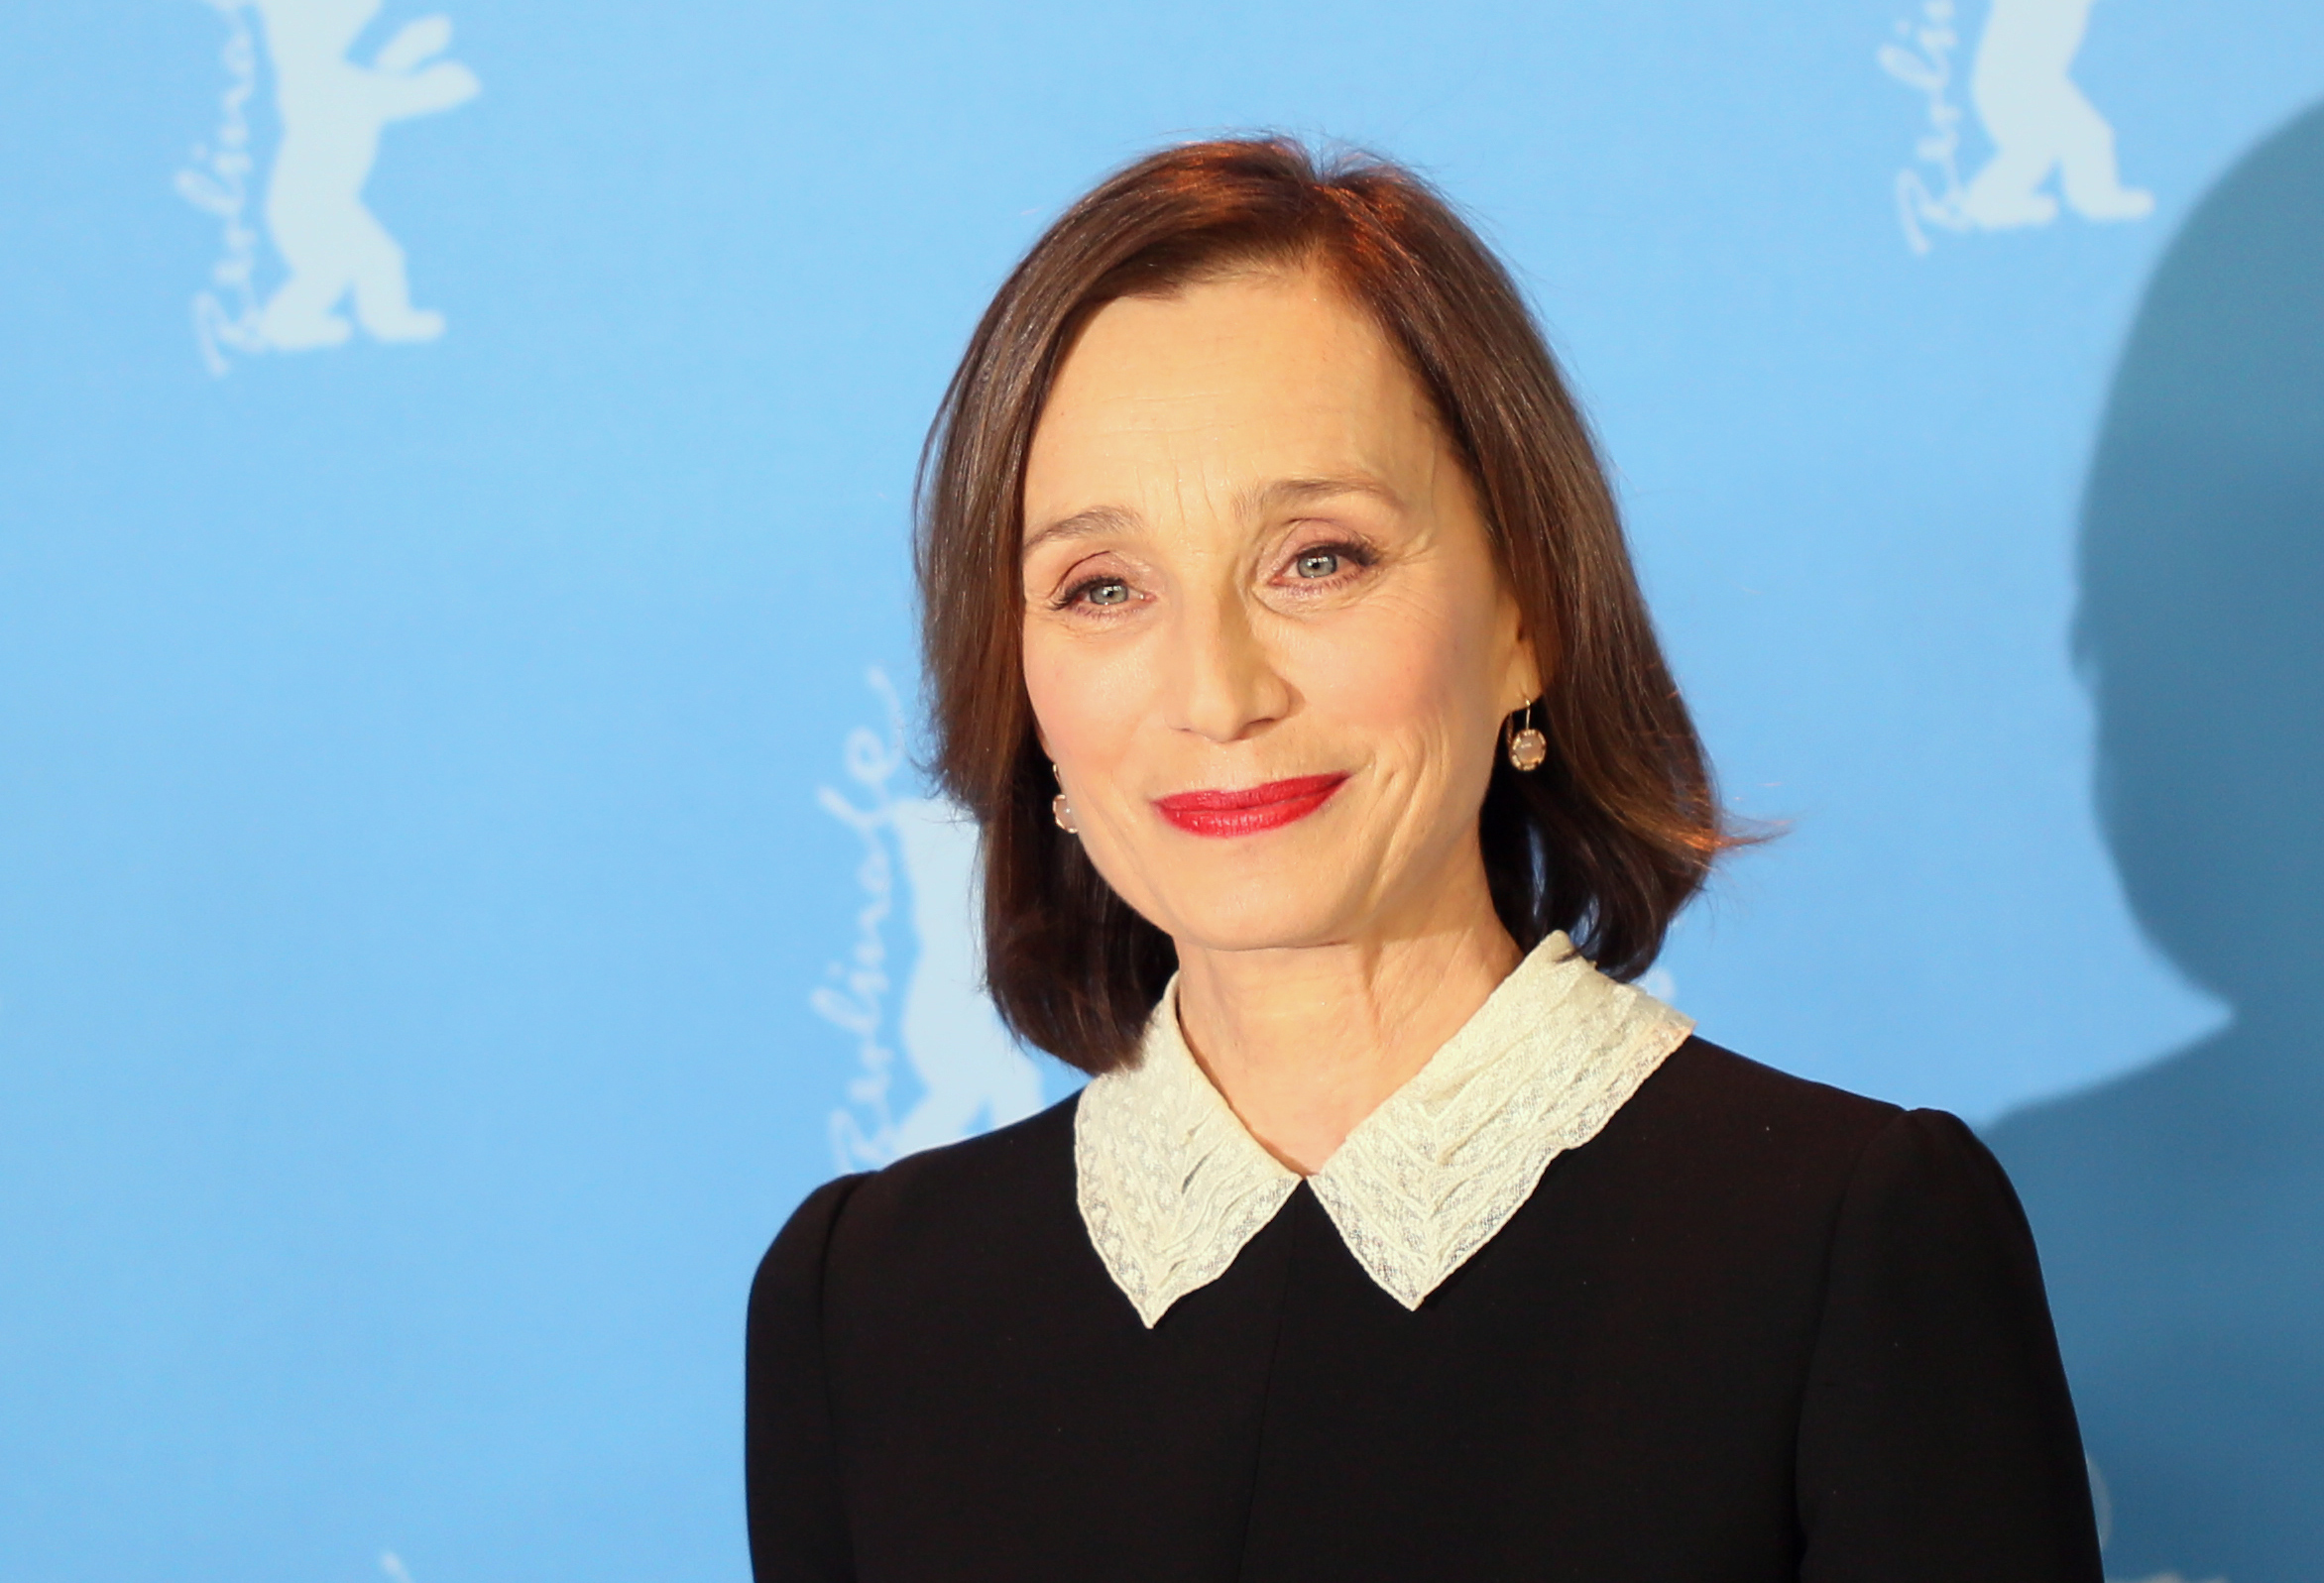 Lockdown watch list: Kristin Scott Thomas shares what she's streaming while stuck indoors